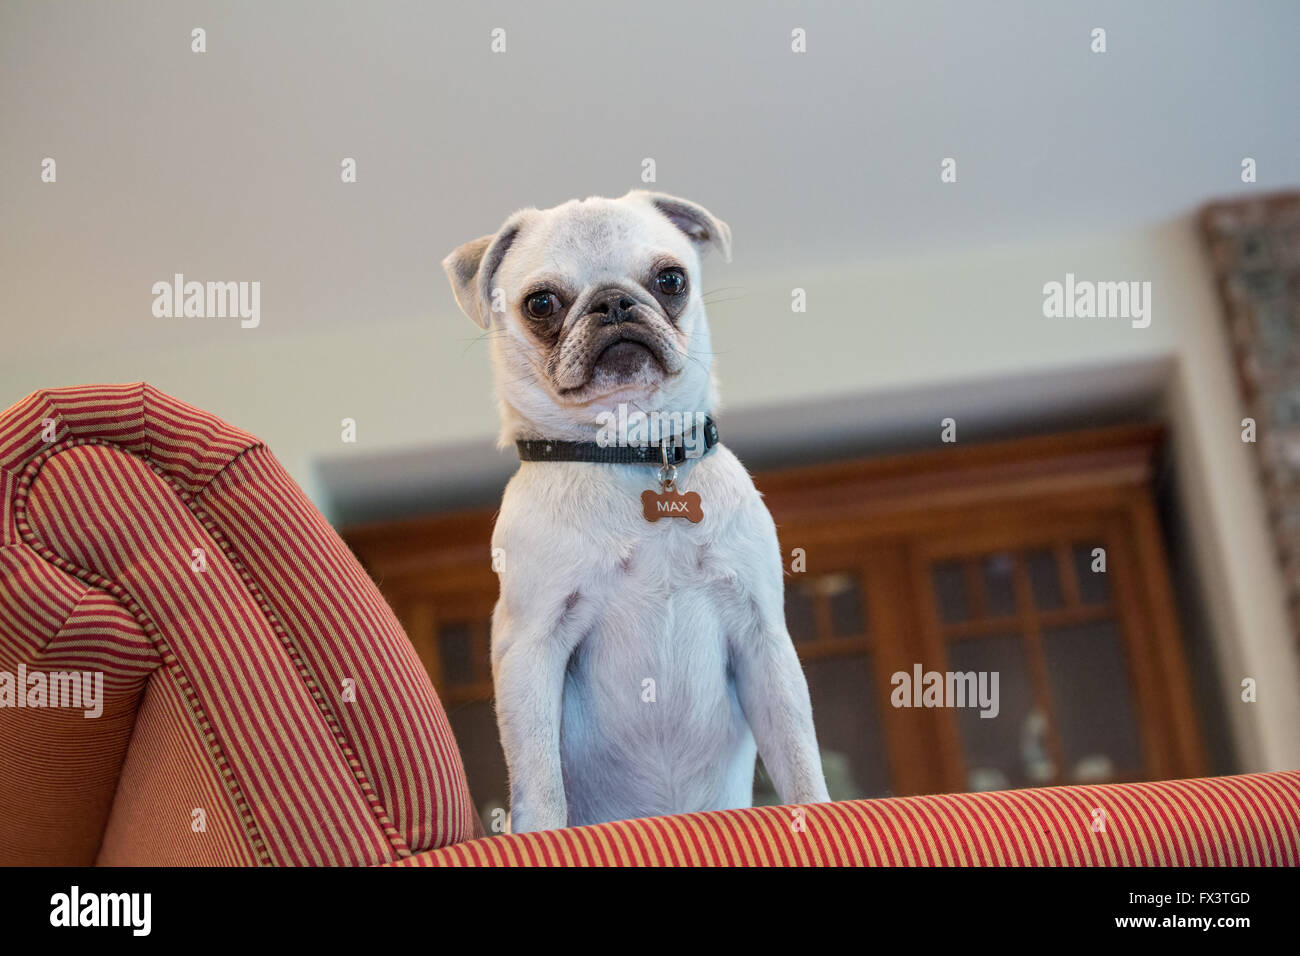 Max, a white Pug puppy, standing in an upholstered chair, looking down, in Issaquah, Washington, USA - Stock Image